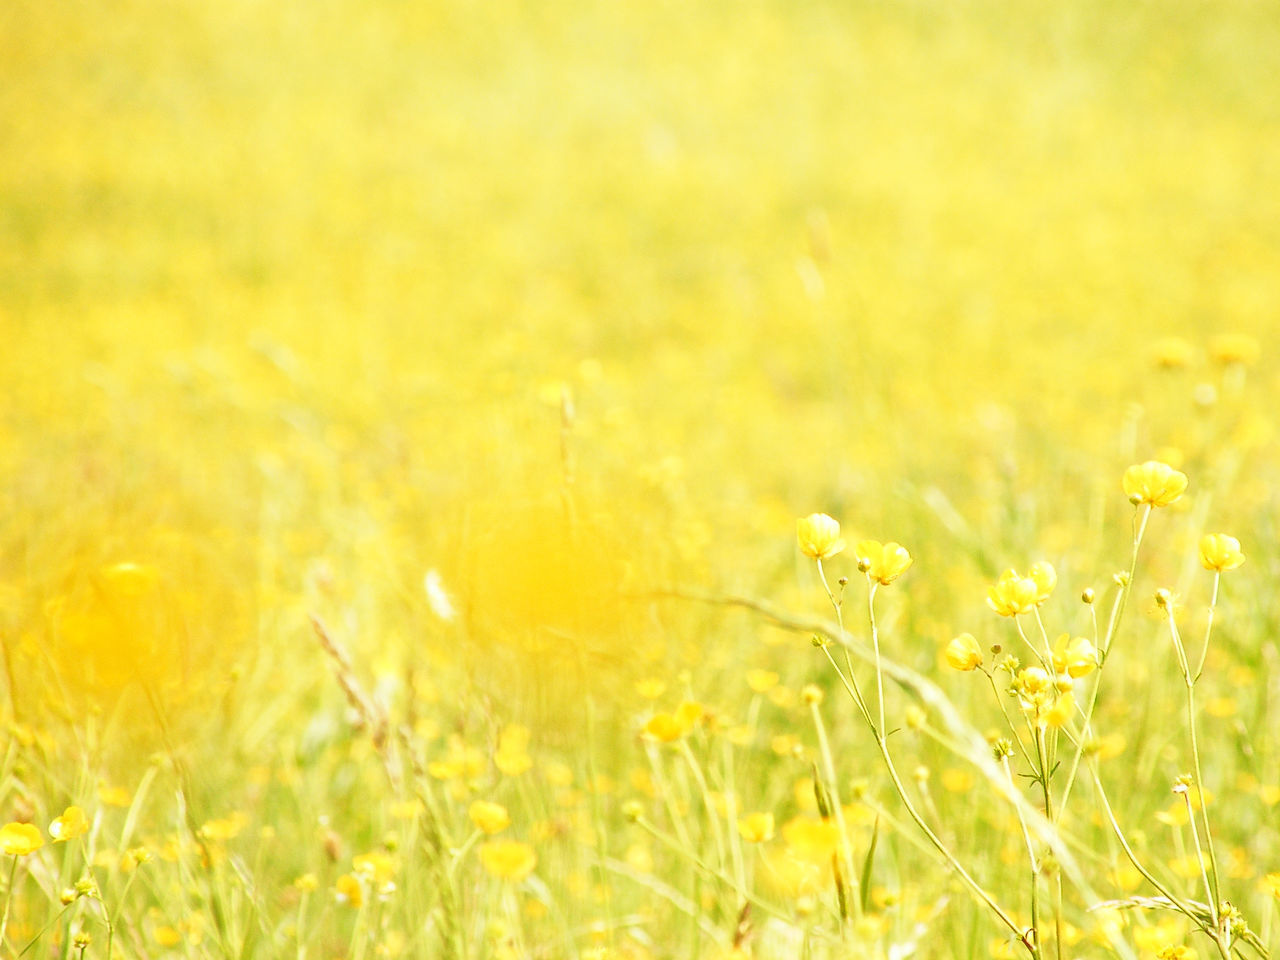 Agriculture Beauty In Nature Close-up Crop  Day Field Flower Fragility Freshness Grass Growth Meadow Nature No People Outdoors Plant Rural Scene Selective Focus Tranquility Wheat Yellow